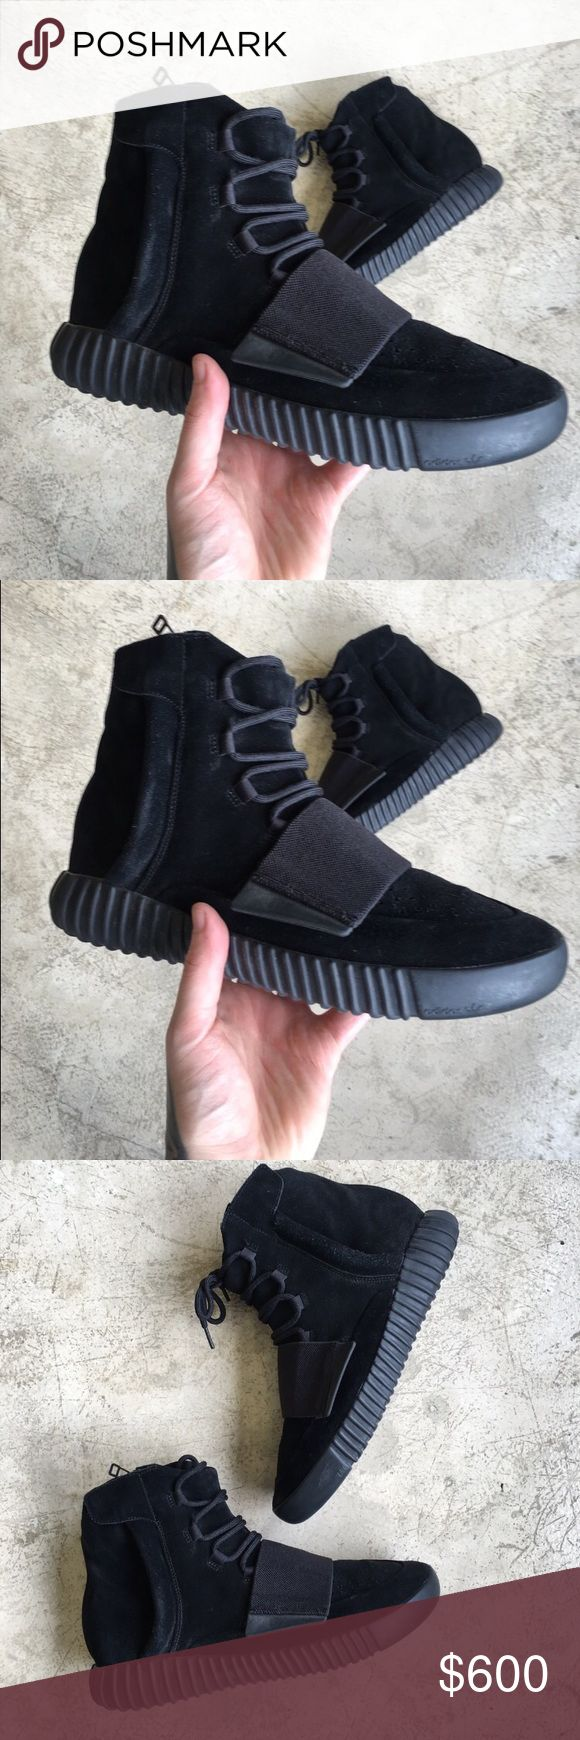 Yeezy Boost 750 Pirate Black 9/10 condition worn a handful of times Yeezy Shoes Sneakers